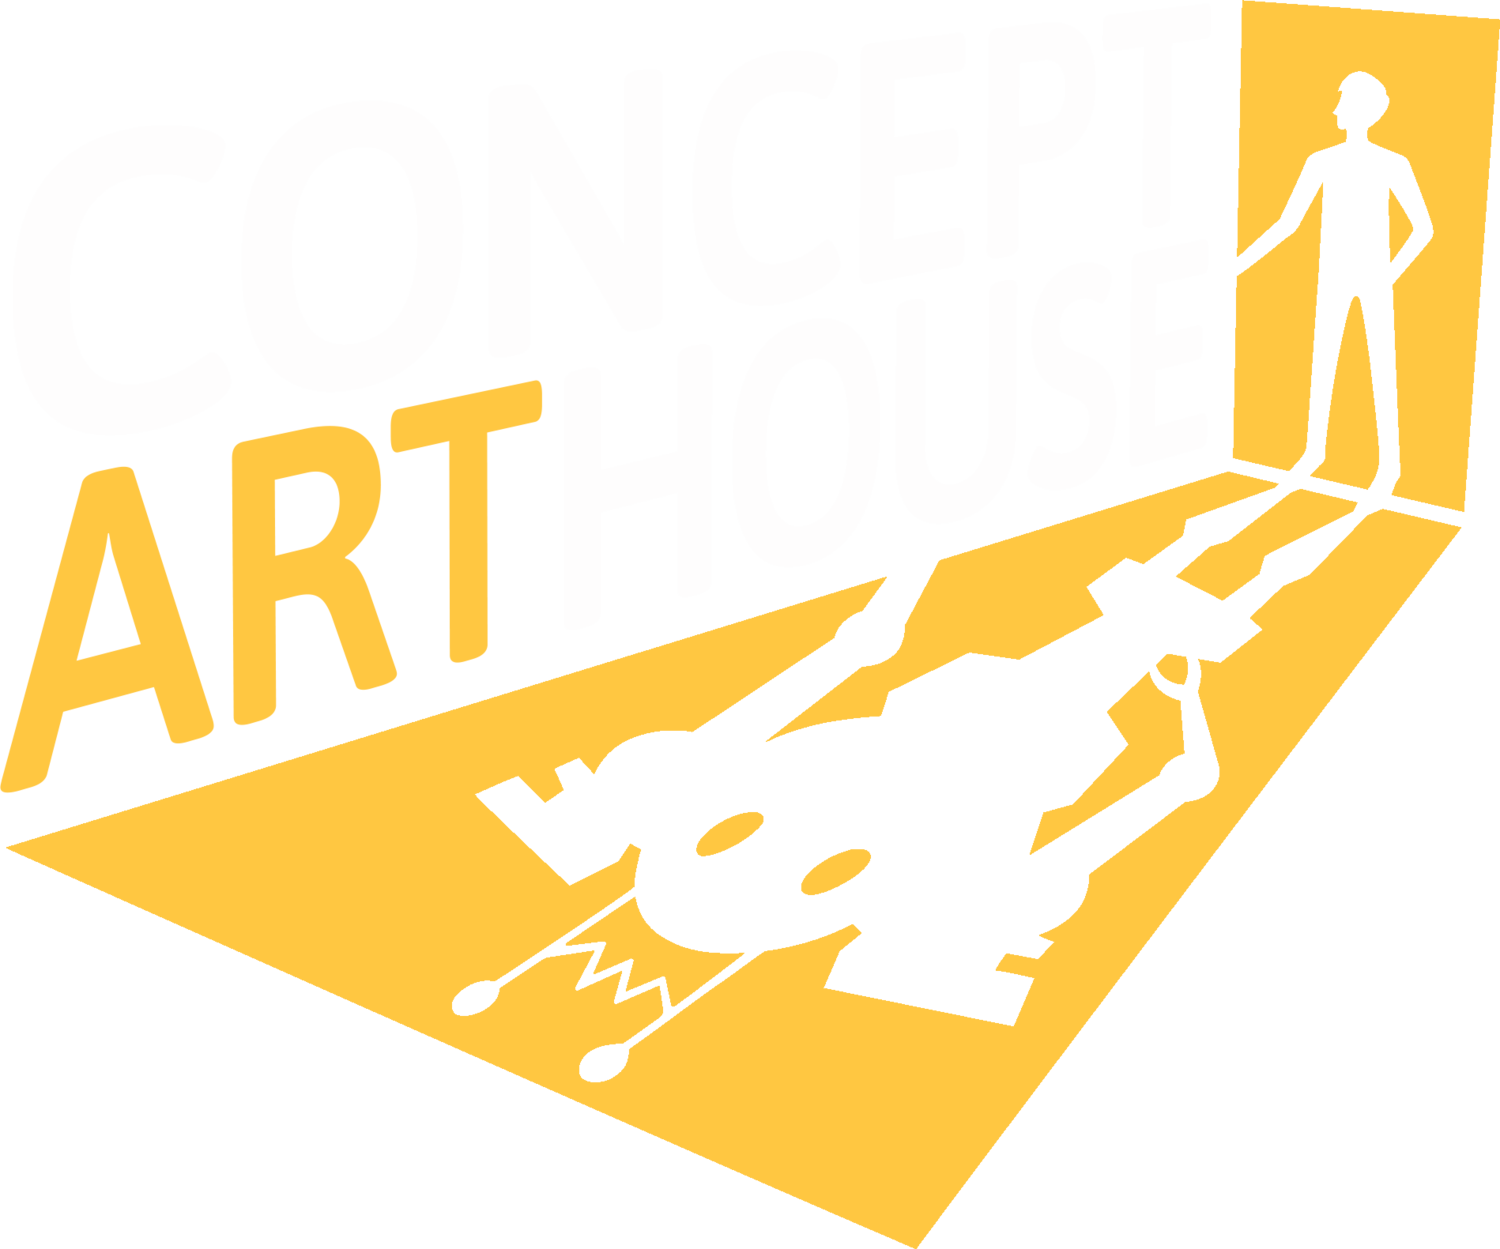 Concept Art House | Game Art Outsourcing